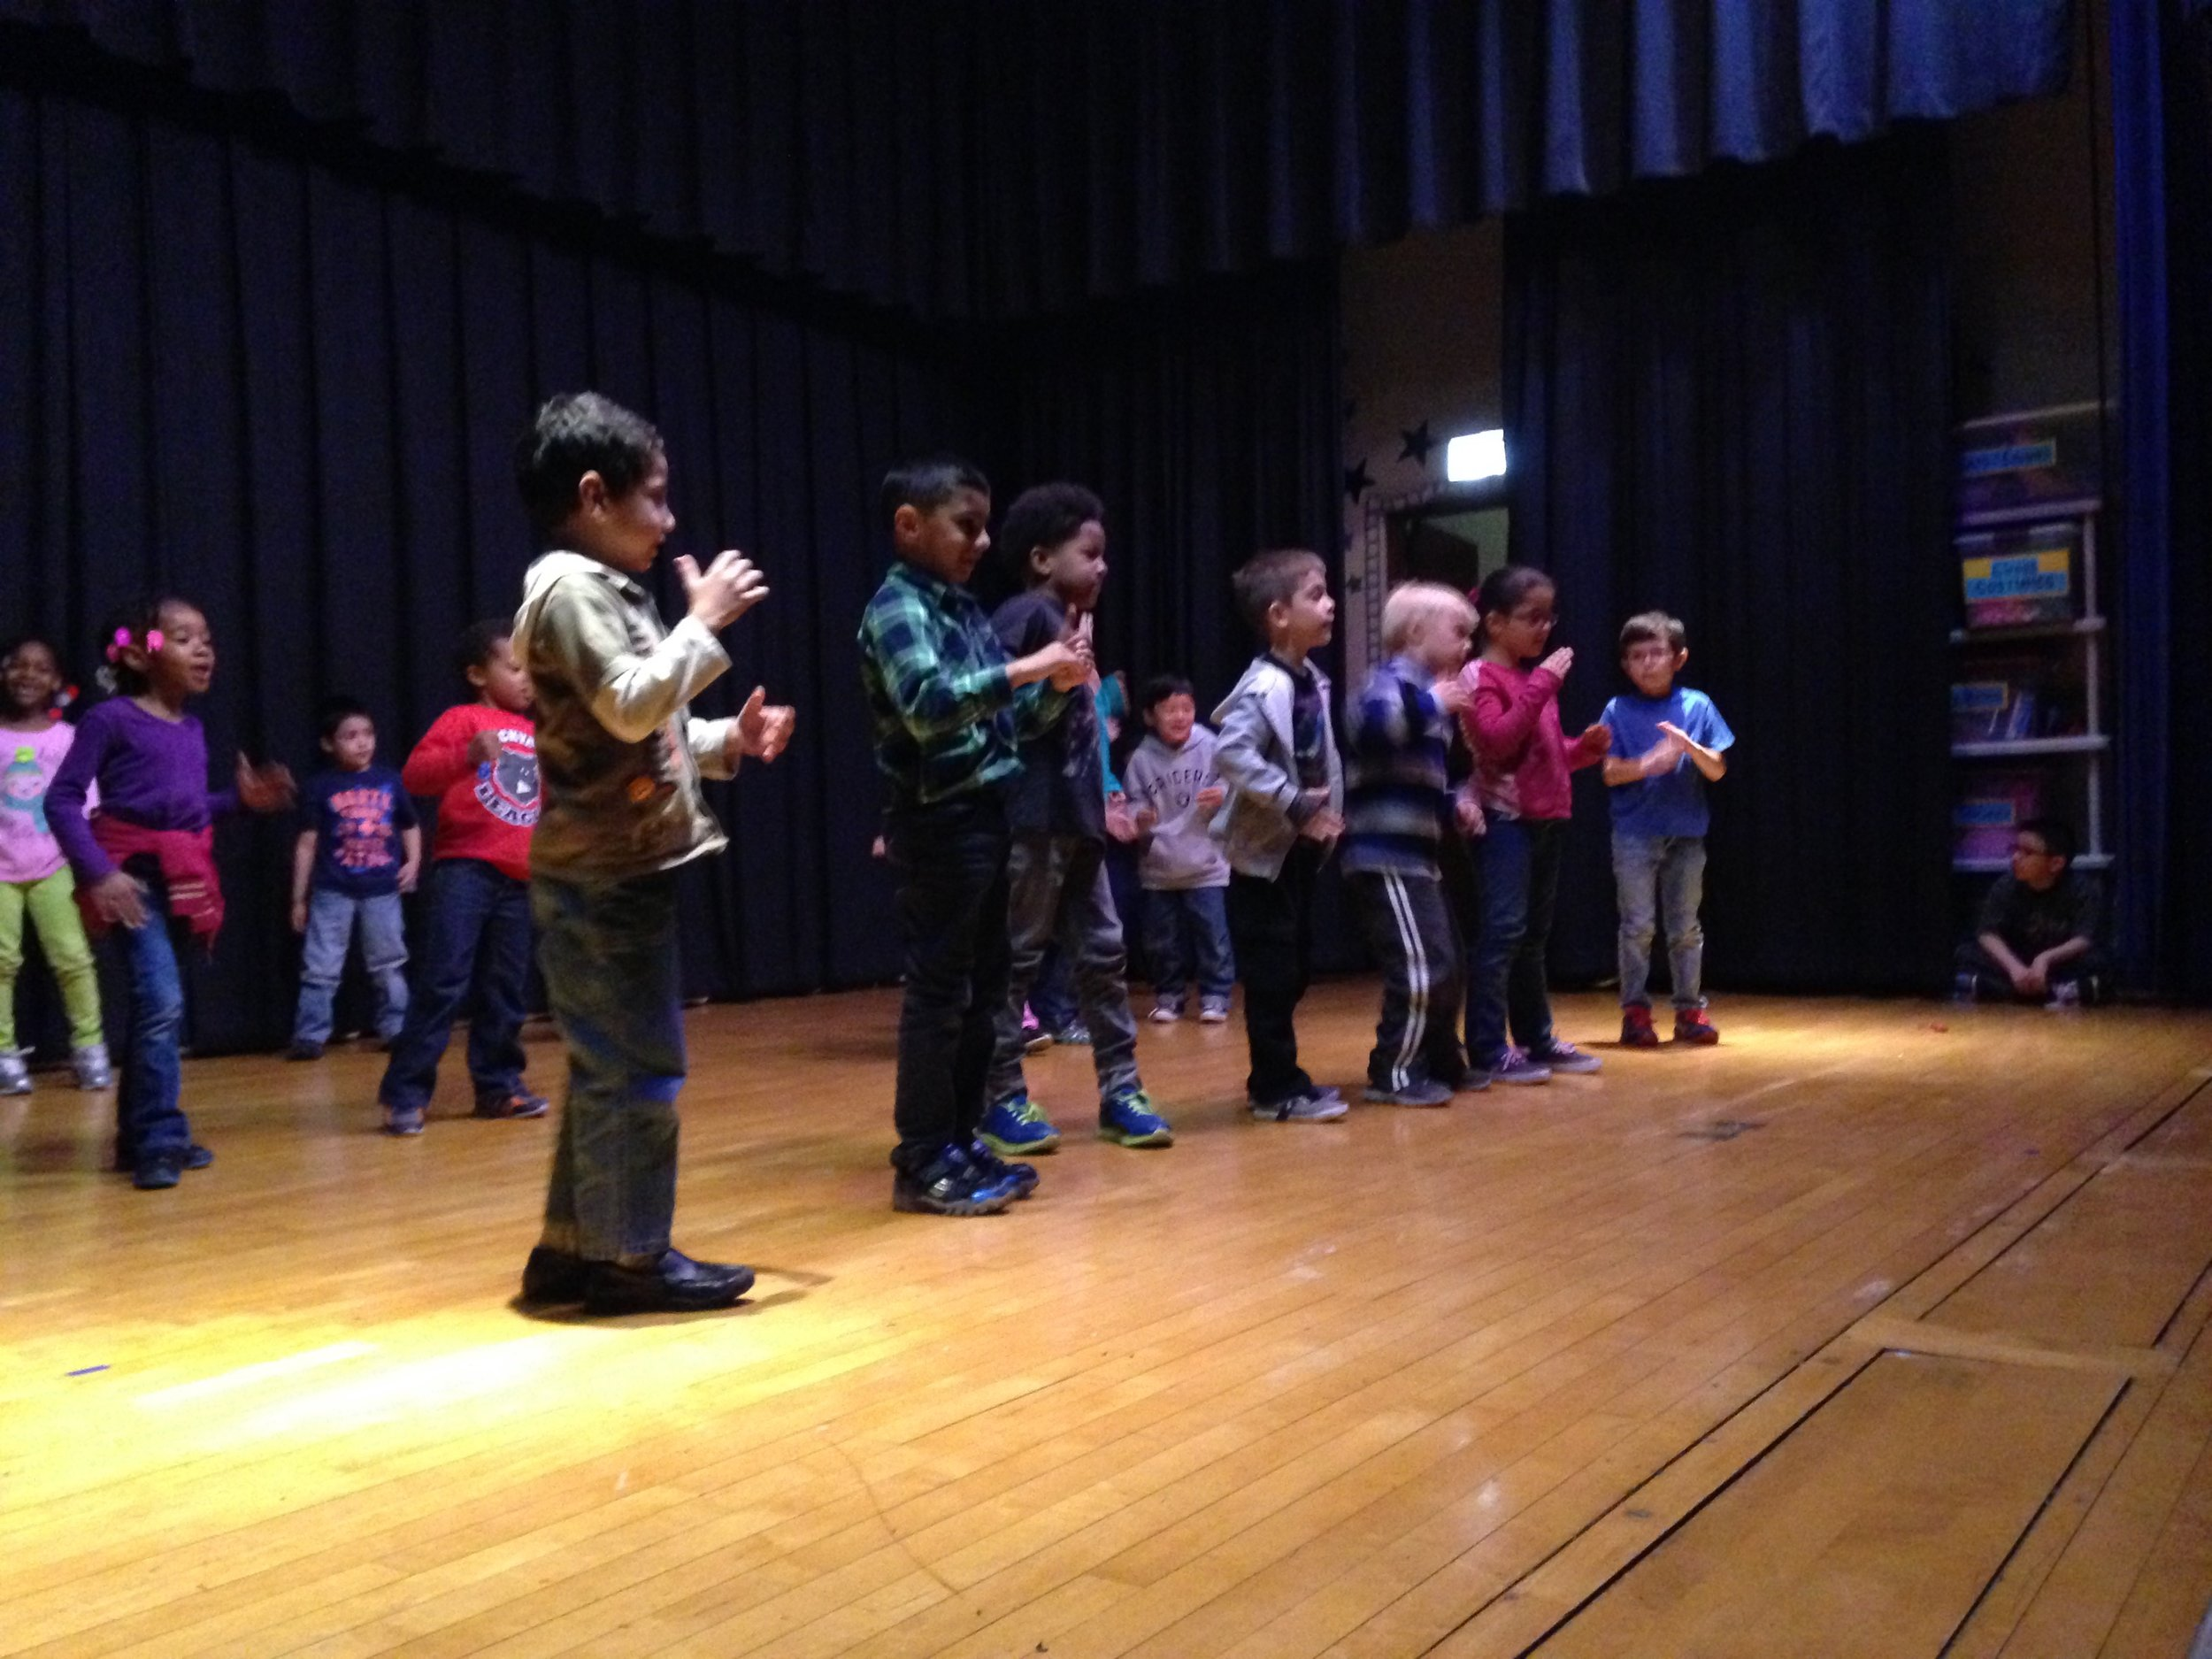 Each year at Rogers School I put over 700 students onstage. This school program was funded by Donna's Good Things: an organization founded by a family who lost their young daughter to cancer, and were committed to sharing the joy of dance which had buoyed their daughter during her illness.